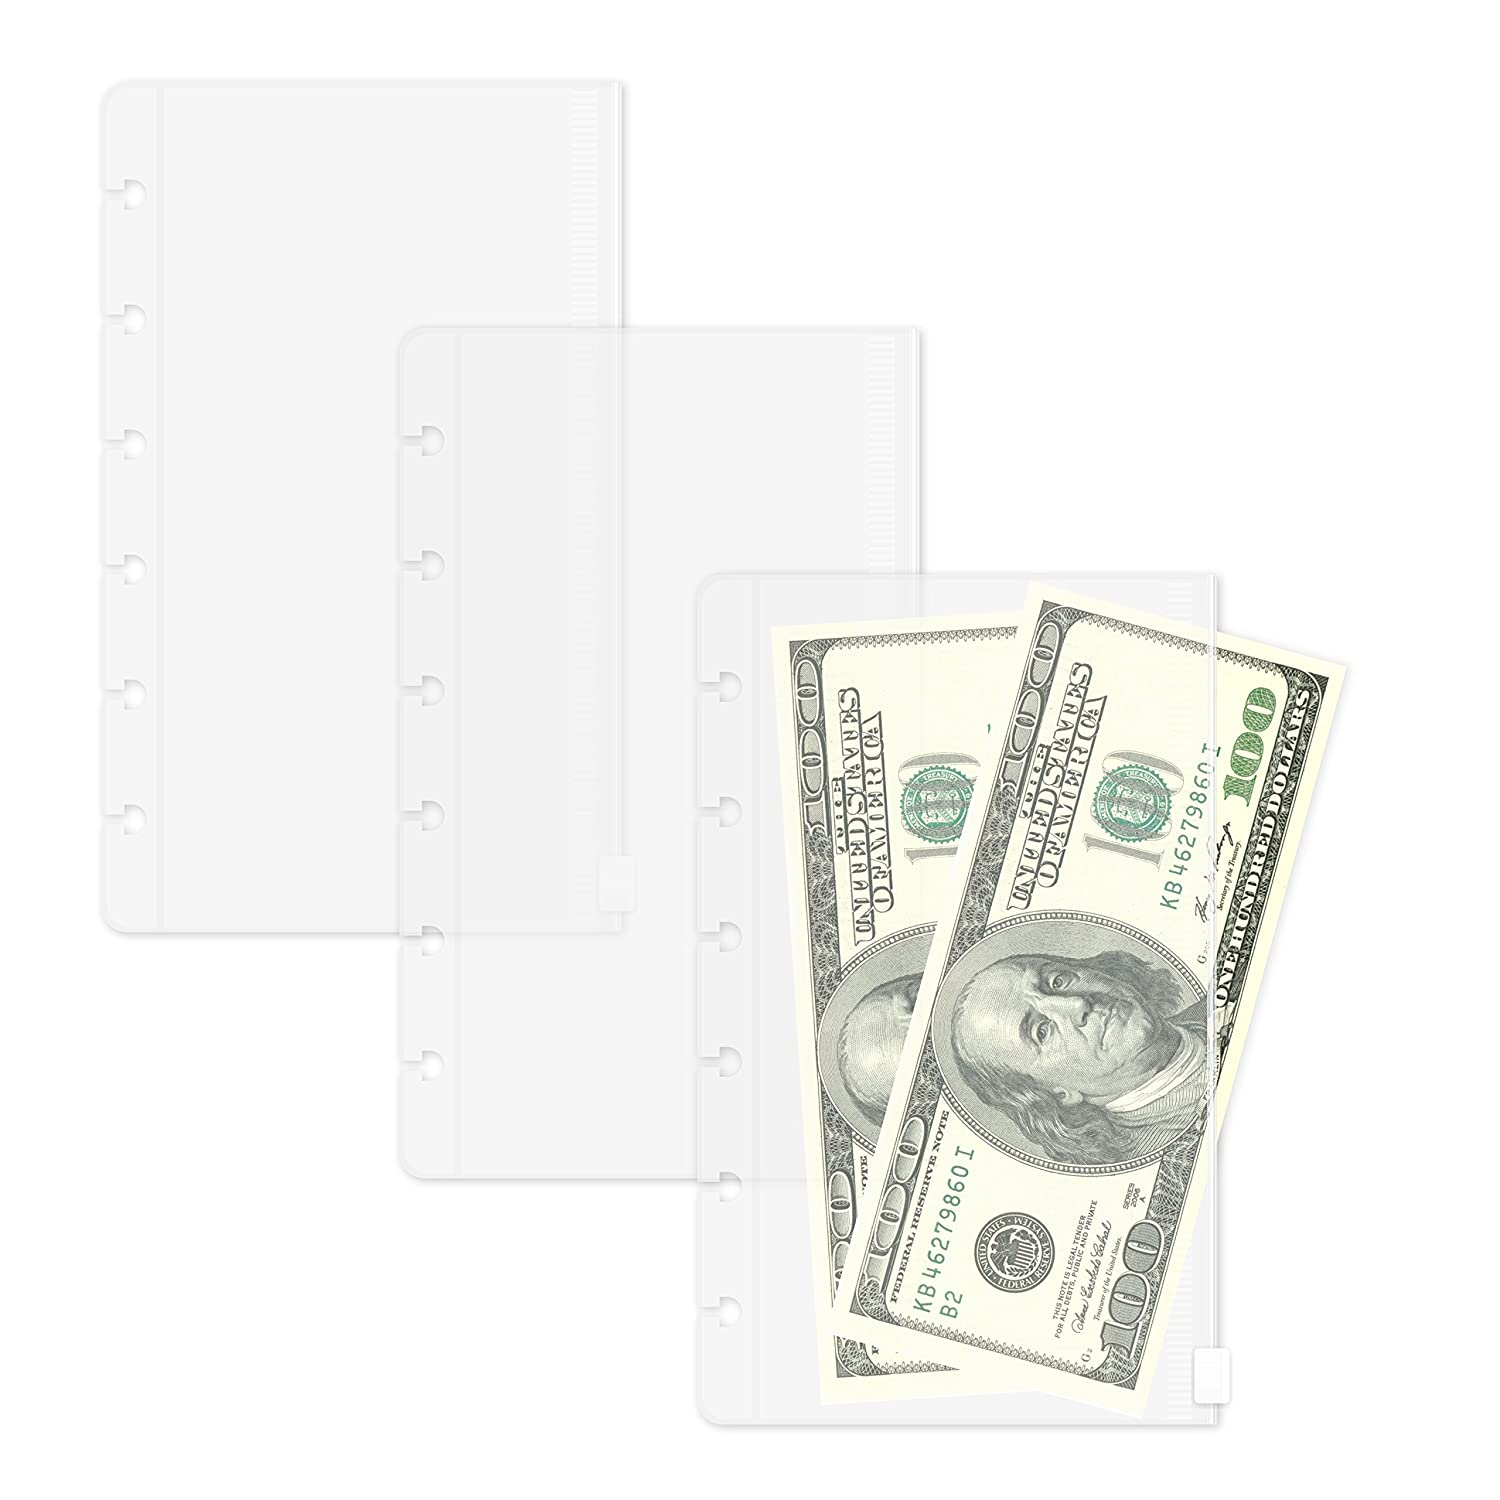 Size Discagenda Clear Top-Opening Pocket Pouch A5 3 Pack for Discbound Planner Personal Organizer 5.8x8.3in